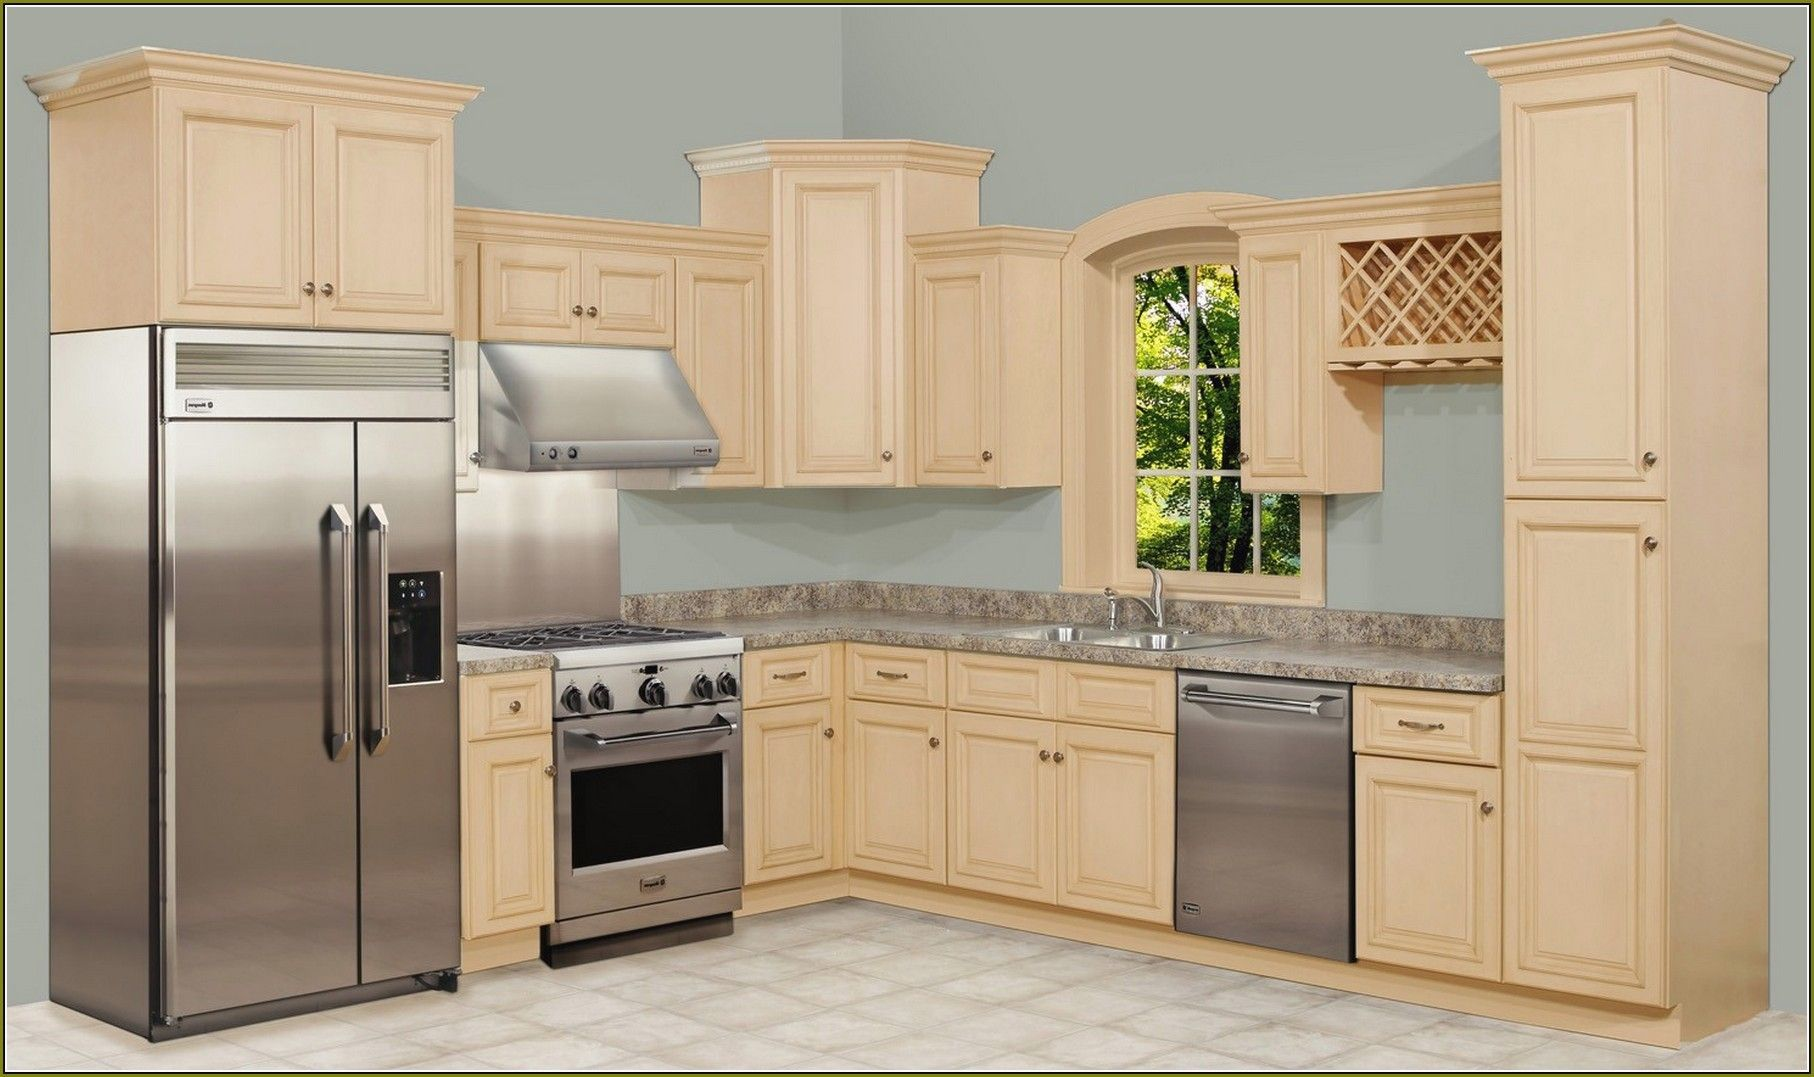 Luxury Home Depot Premade Kitchen Cabinets The Most Amazing And Also Interesti Unfinished Kitchen Cabinets Kitchen Cabinets Home Depot Kitchen Cabinet Styles